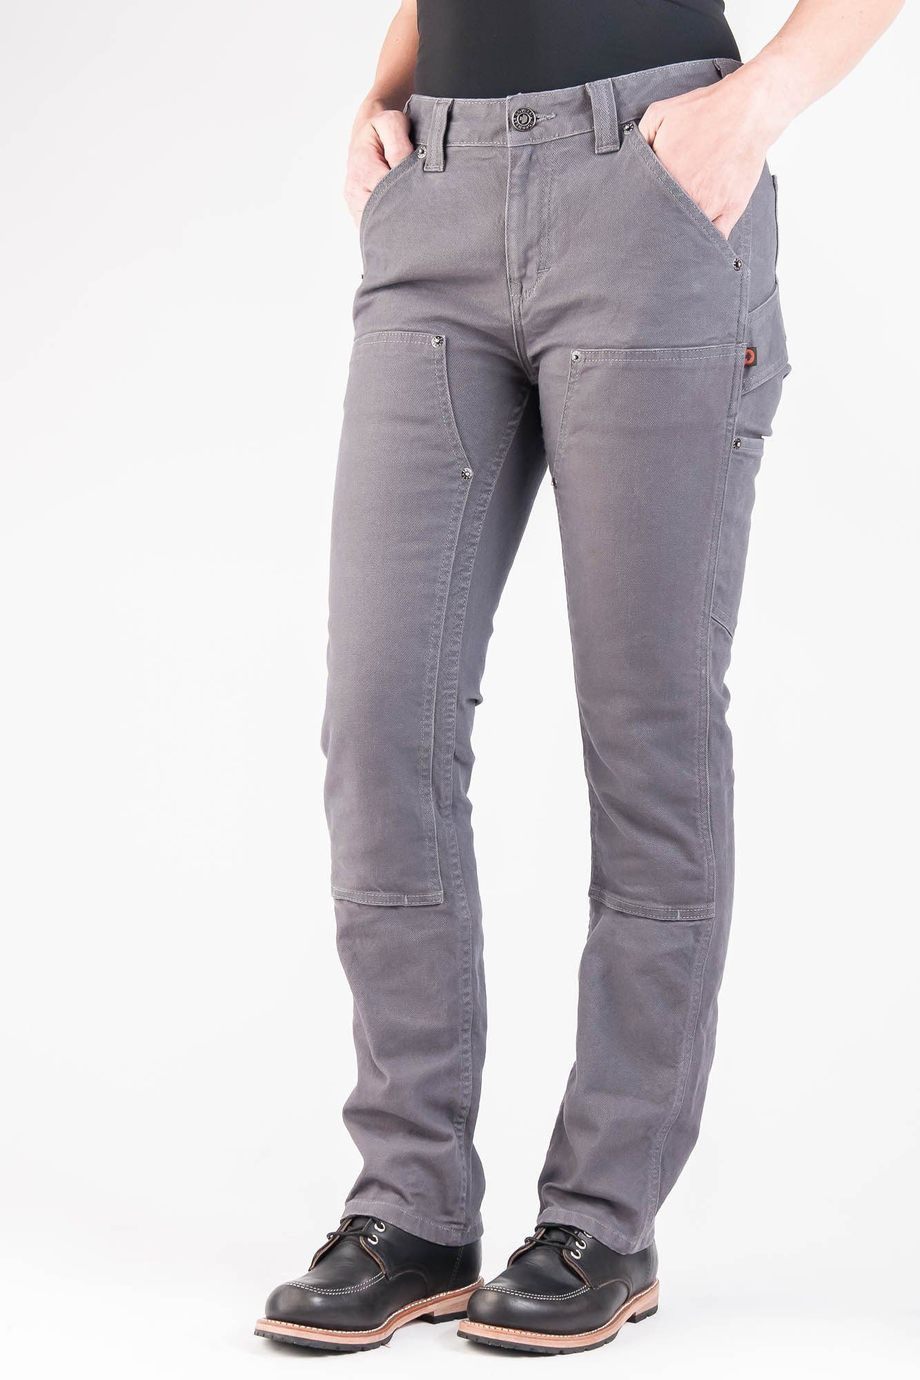 wrangler relaxed fit cargo pants target